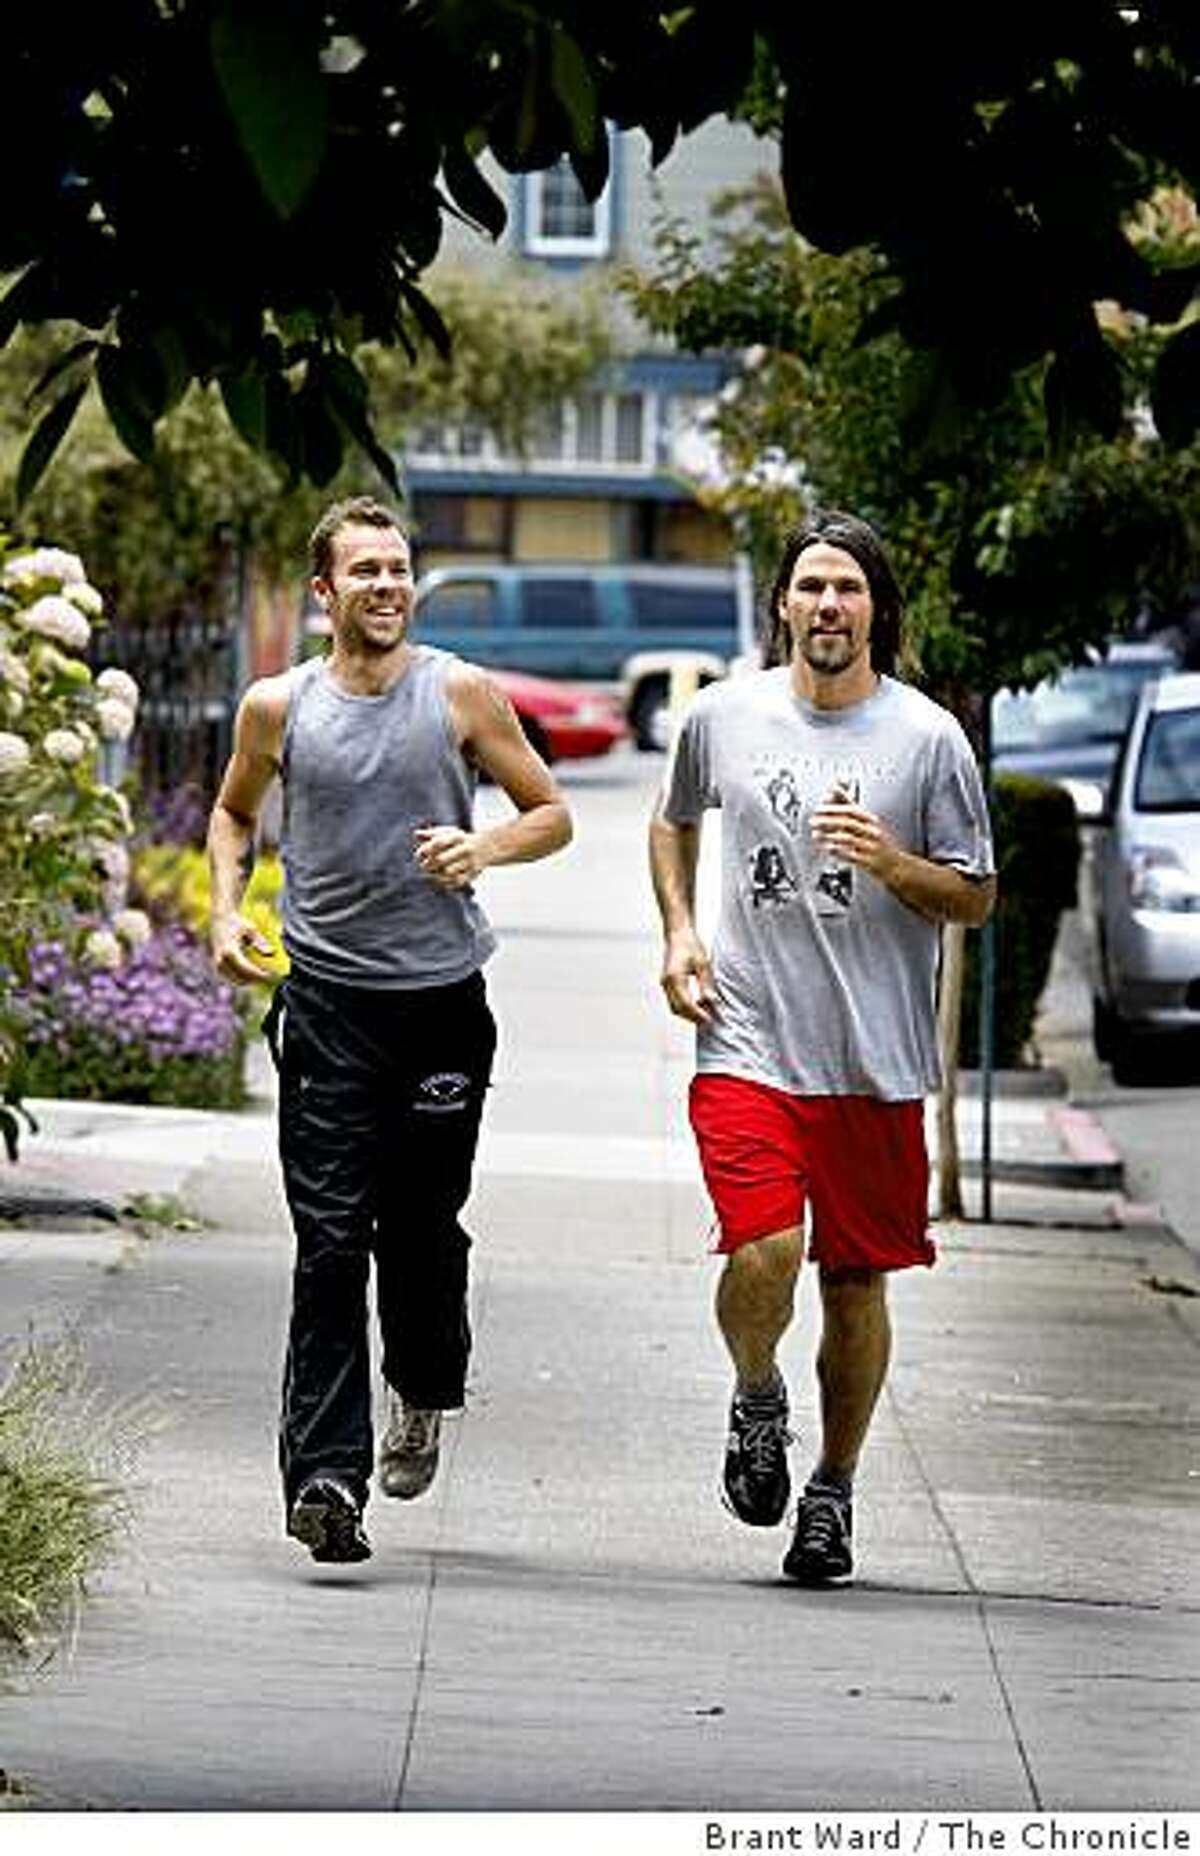 Brian (left) and Matt (right) run down 49th Street near Telegraph Avenue. Matt Szymankowski and Brian Rutherford are running from Oakland to Portland, 831 miles, to raise money for several causes.